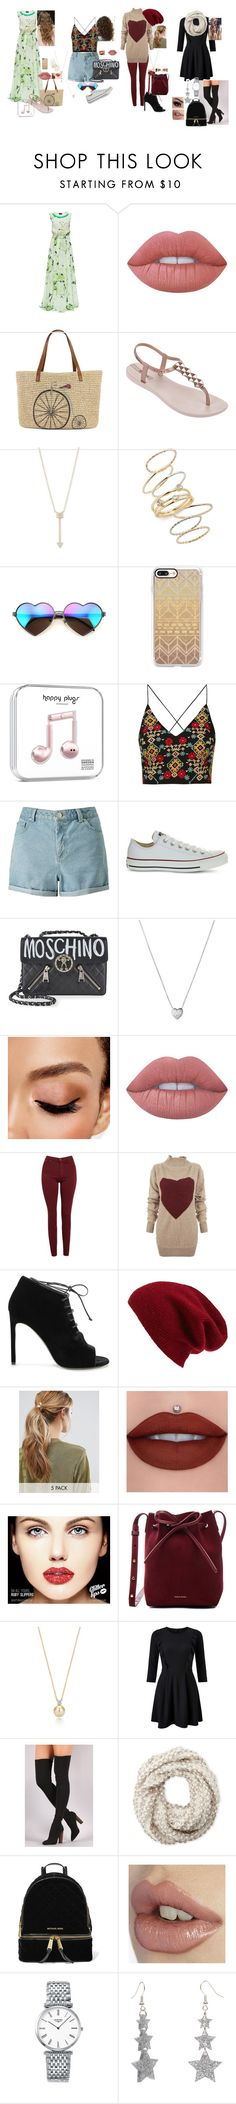 """The Four Seasons"" by terra-wendy ❤ liked on Polyvore featuring Lattori, Lime Crime, Straw Studios, IPANEMA, EF Collection, BP., Wildfox, Casetify, Topshop and Miss Selfridge"